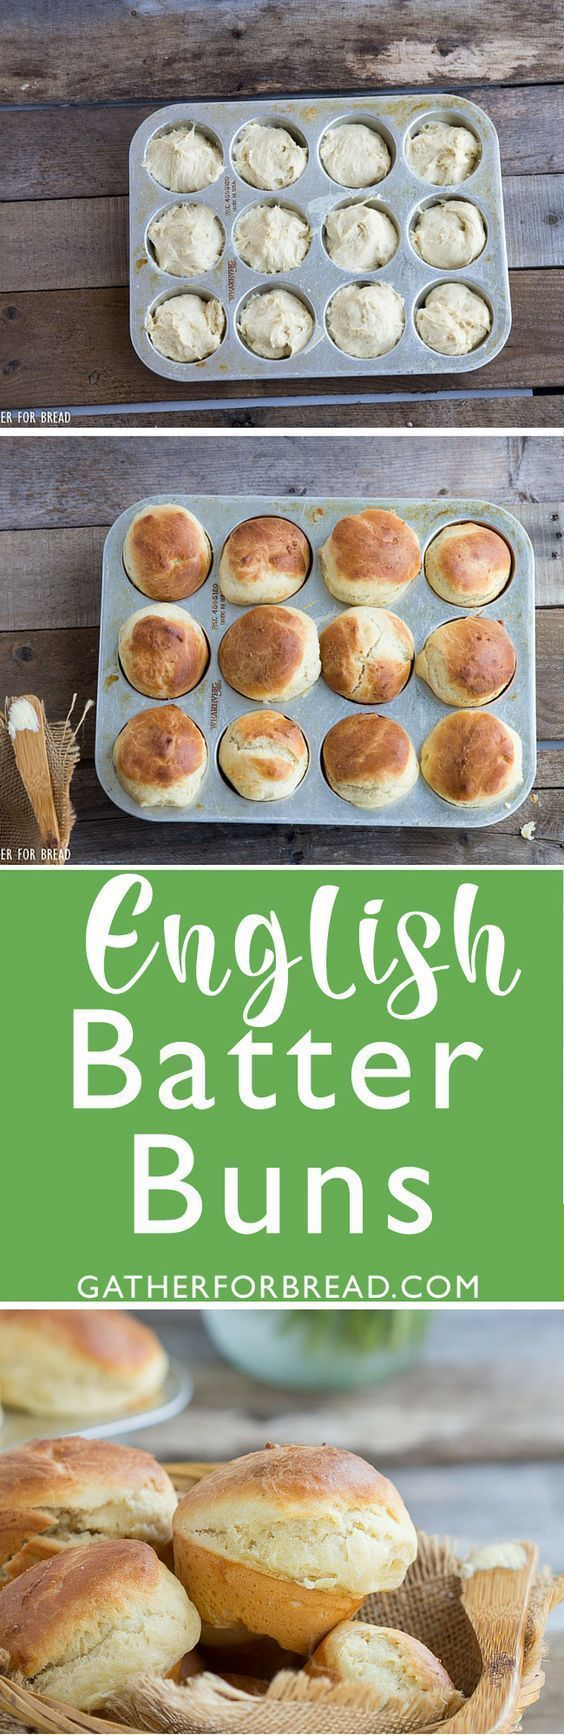 English Batter Buns - Delicous, soft rolls. Perfect as a side for every meal!  | http://gatherforbread.com